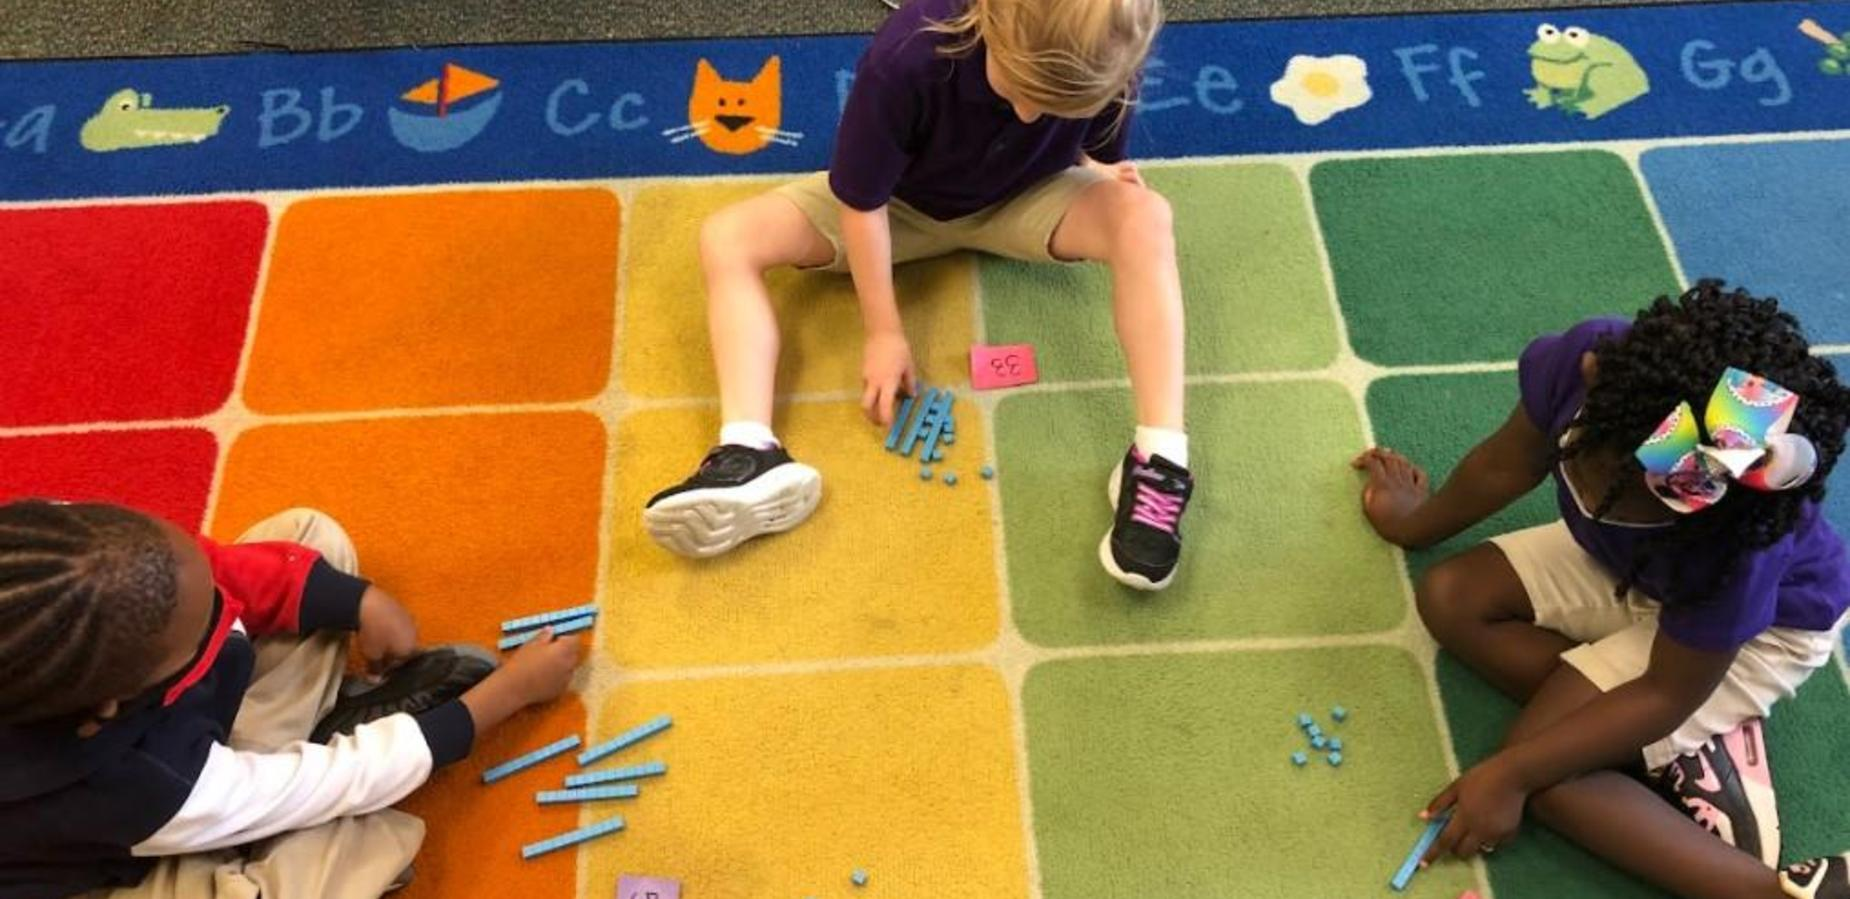 1st graders working with number blocks